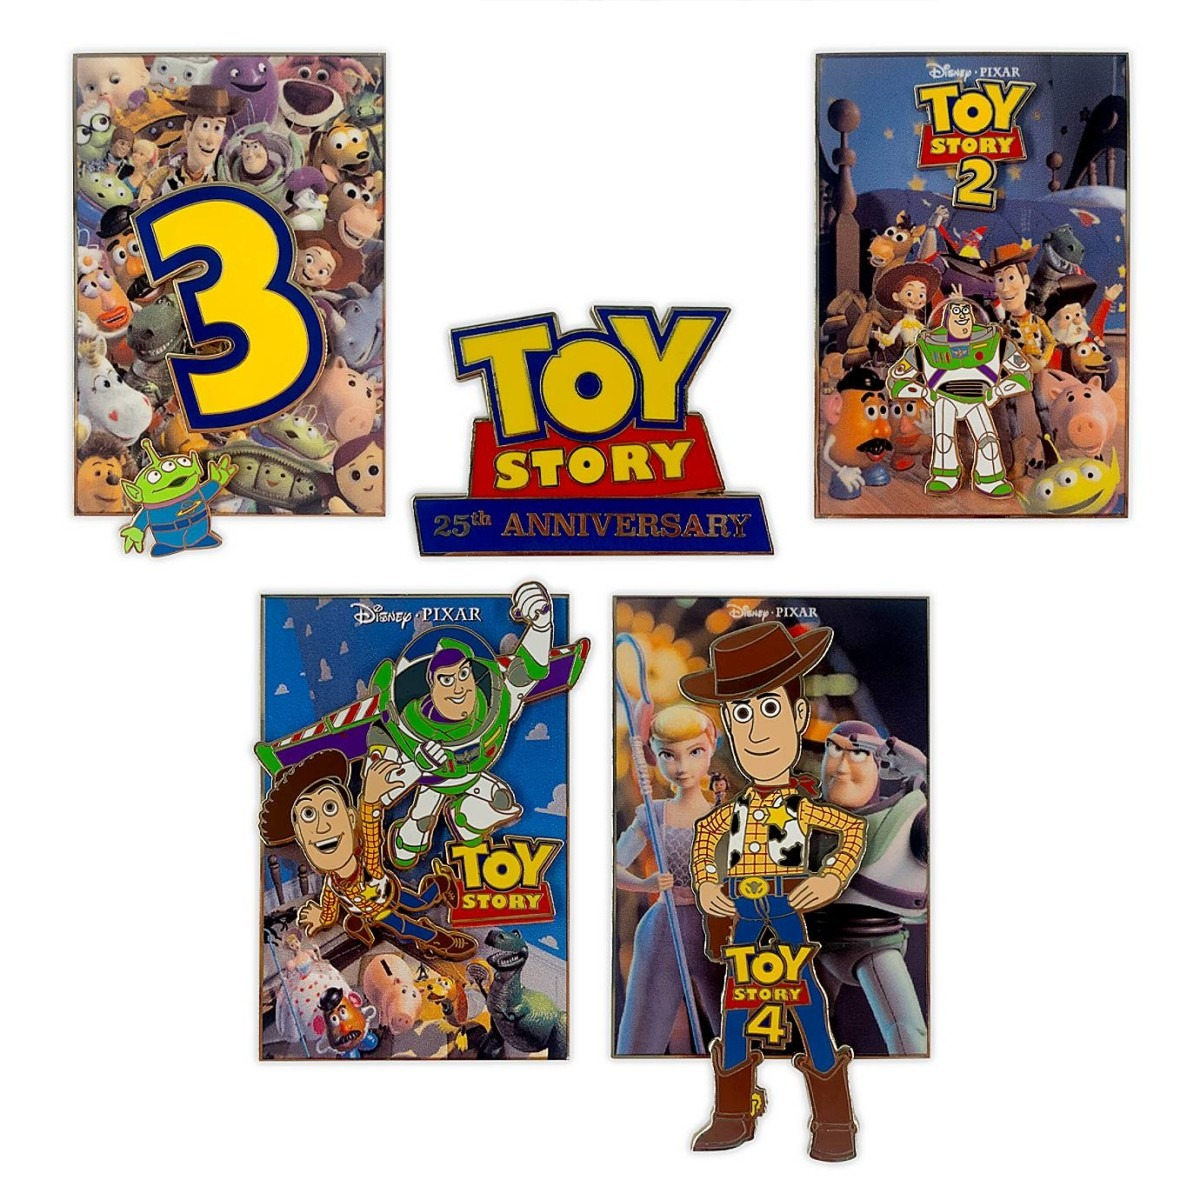 oy Story 25th Anniversary Pin Set – Limited Edition $149.99